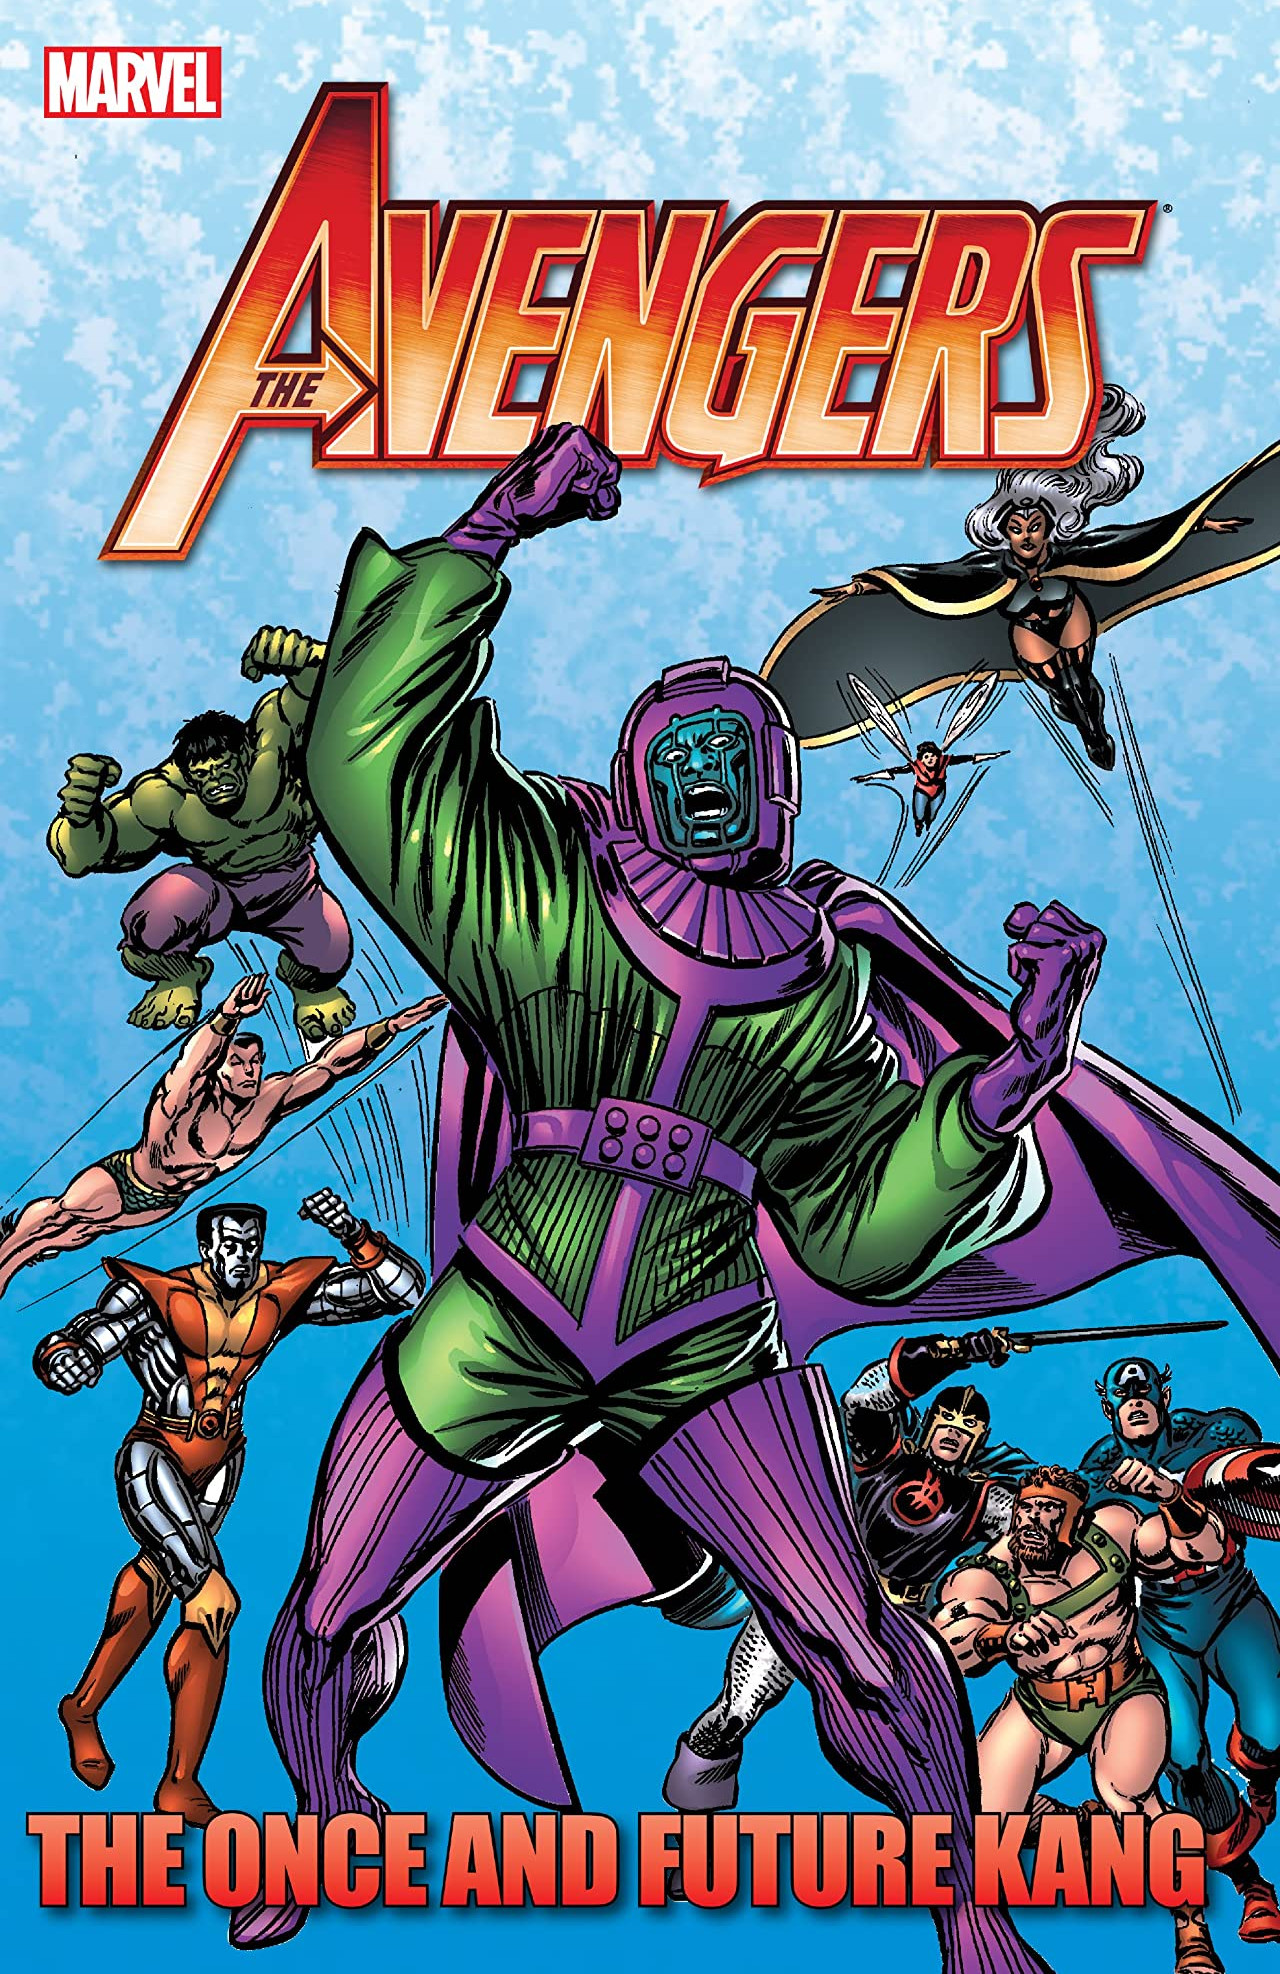 Avengers: The Once and Future Kang TPB Vol 1